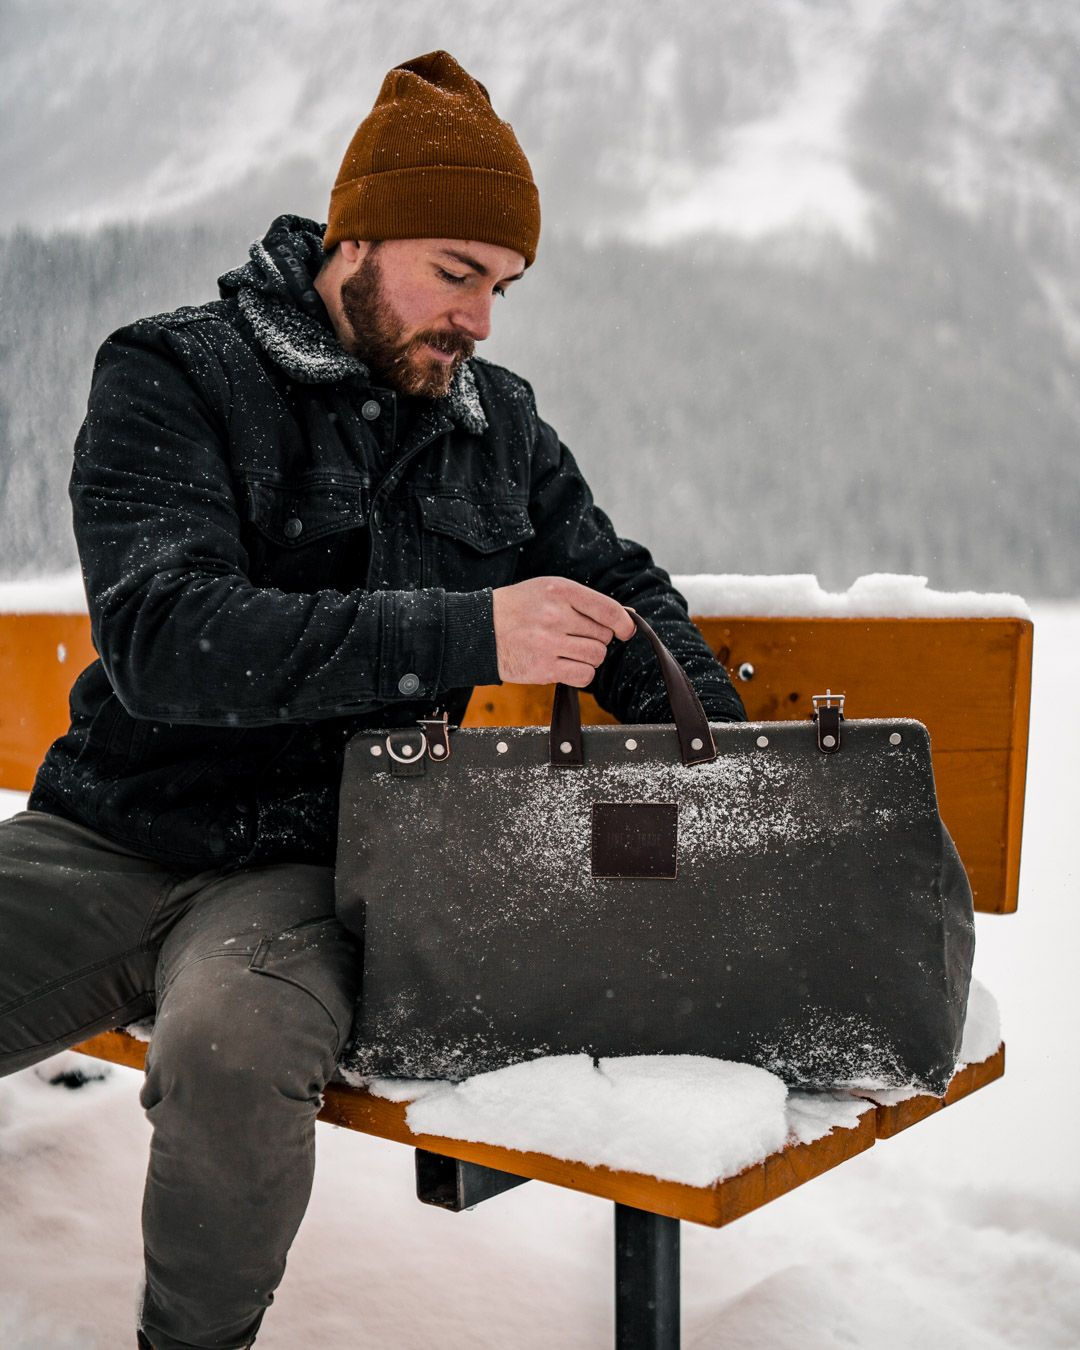 A comprehensive guide of what to pack for Banff National Park in the wintertime  #banff #travelalberta #wintertravel #packingforbanff #packinguide #whattopack #travelguide